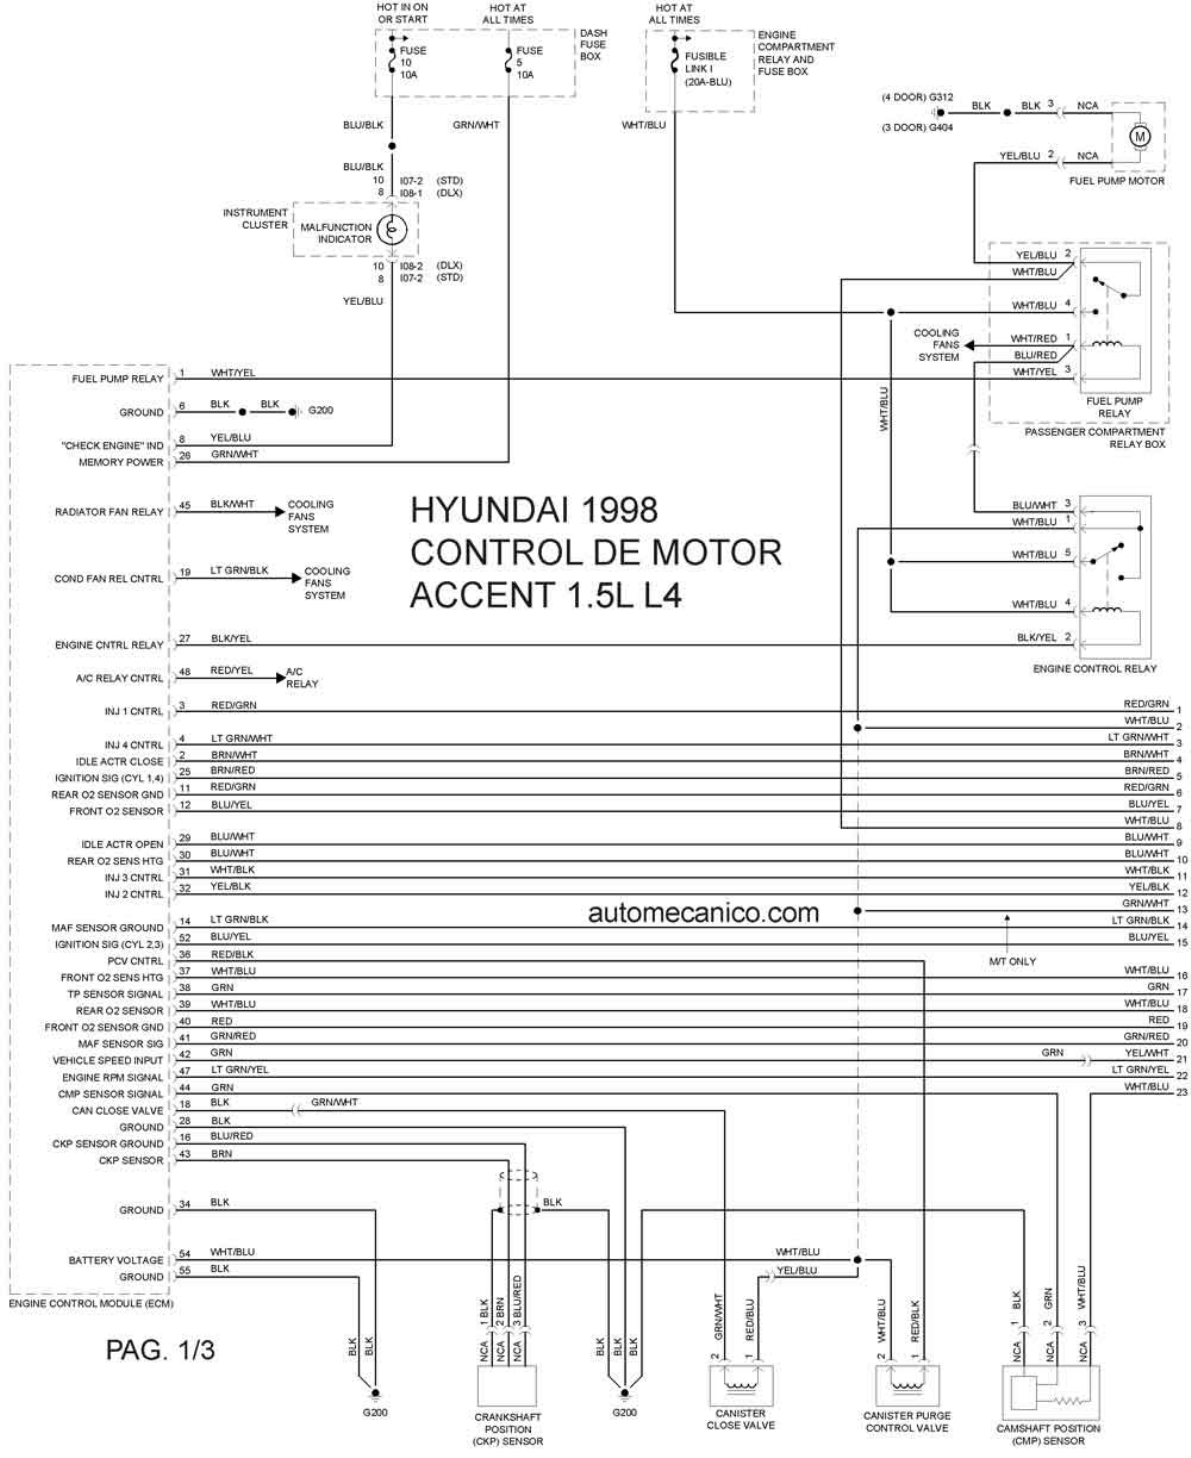 Hyundai Excel Wiring Diagram Download Harness Schematics 2004 Sonata Stereo Wire Accent 1998 Misc Document Pdf Rh Manuals Co 2002